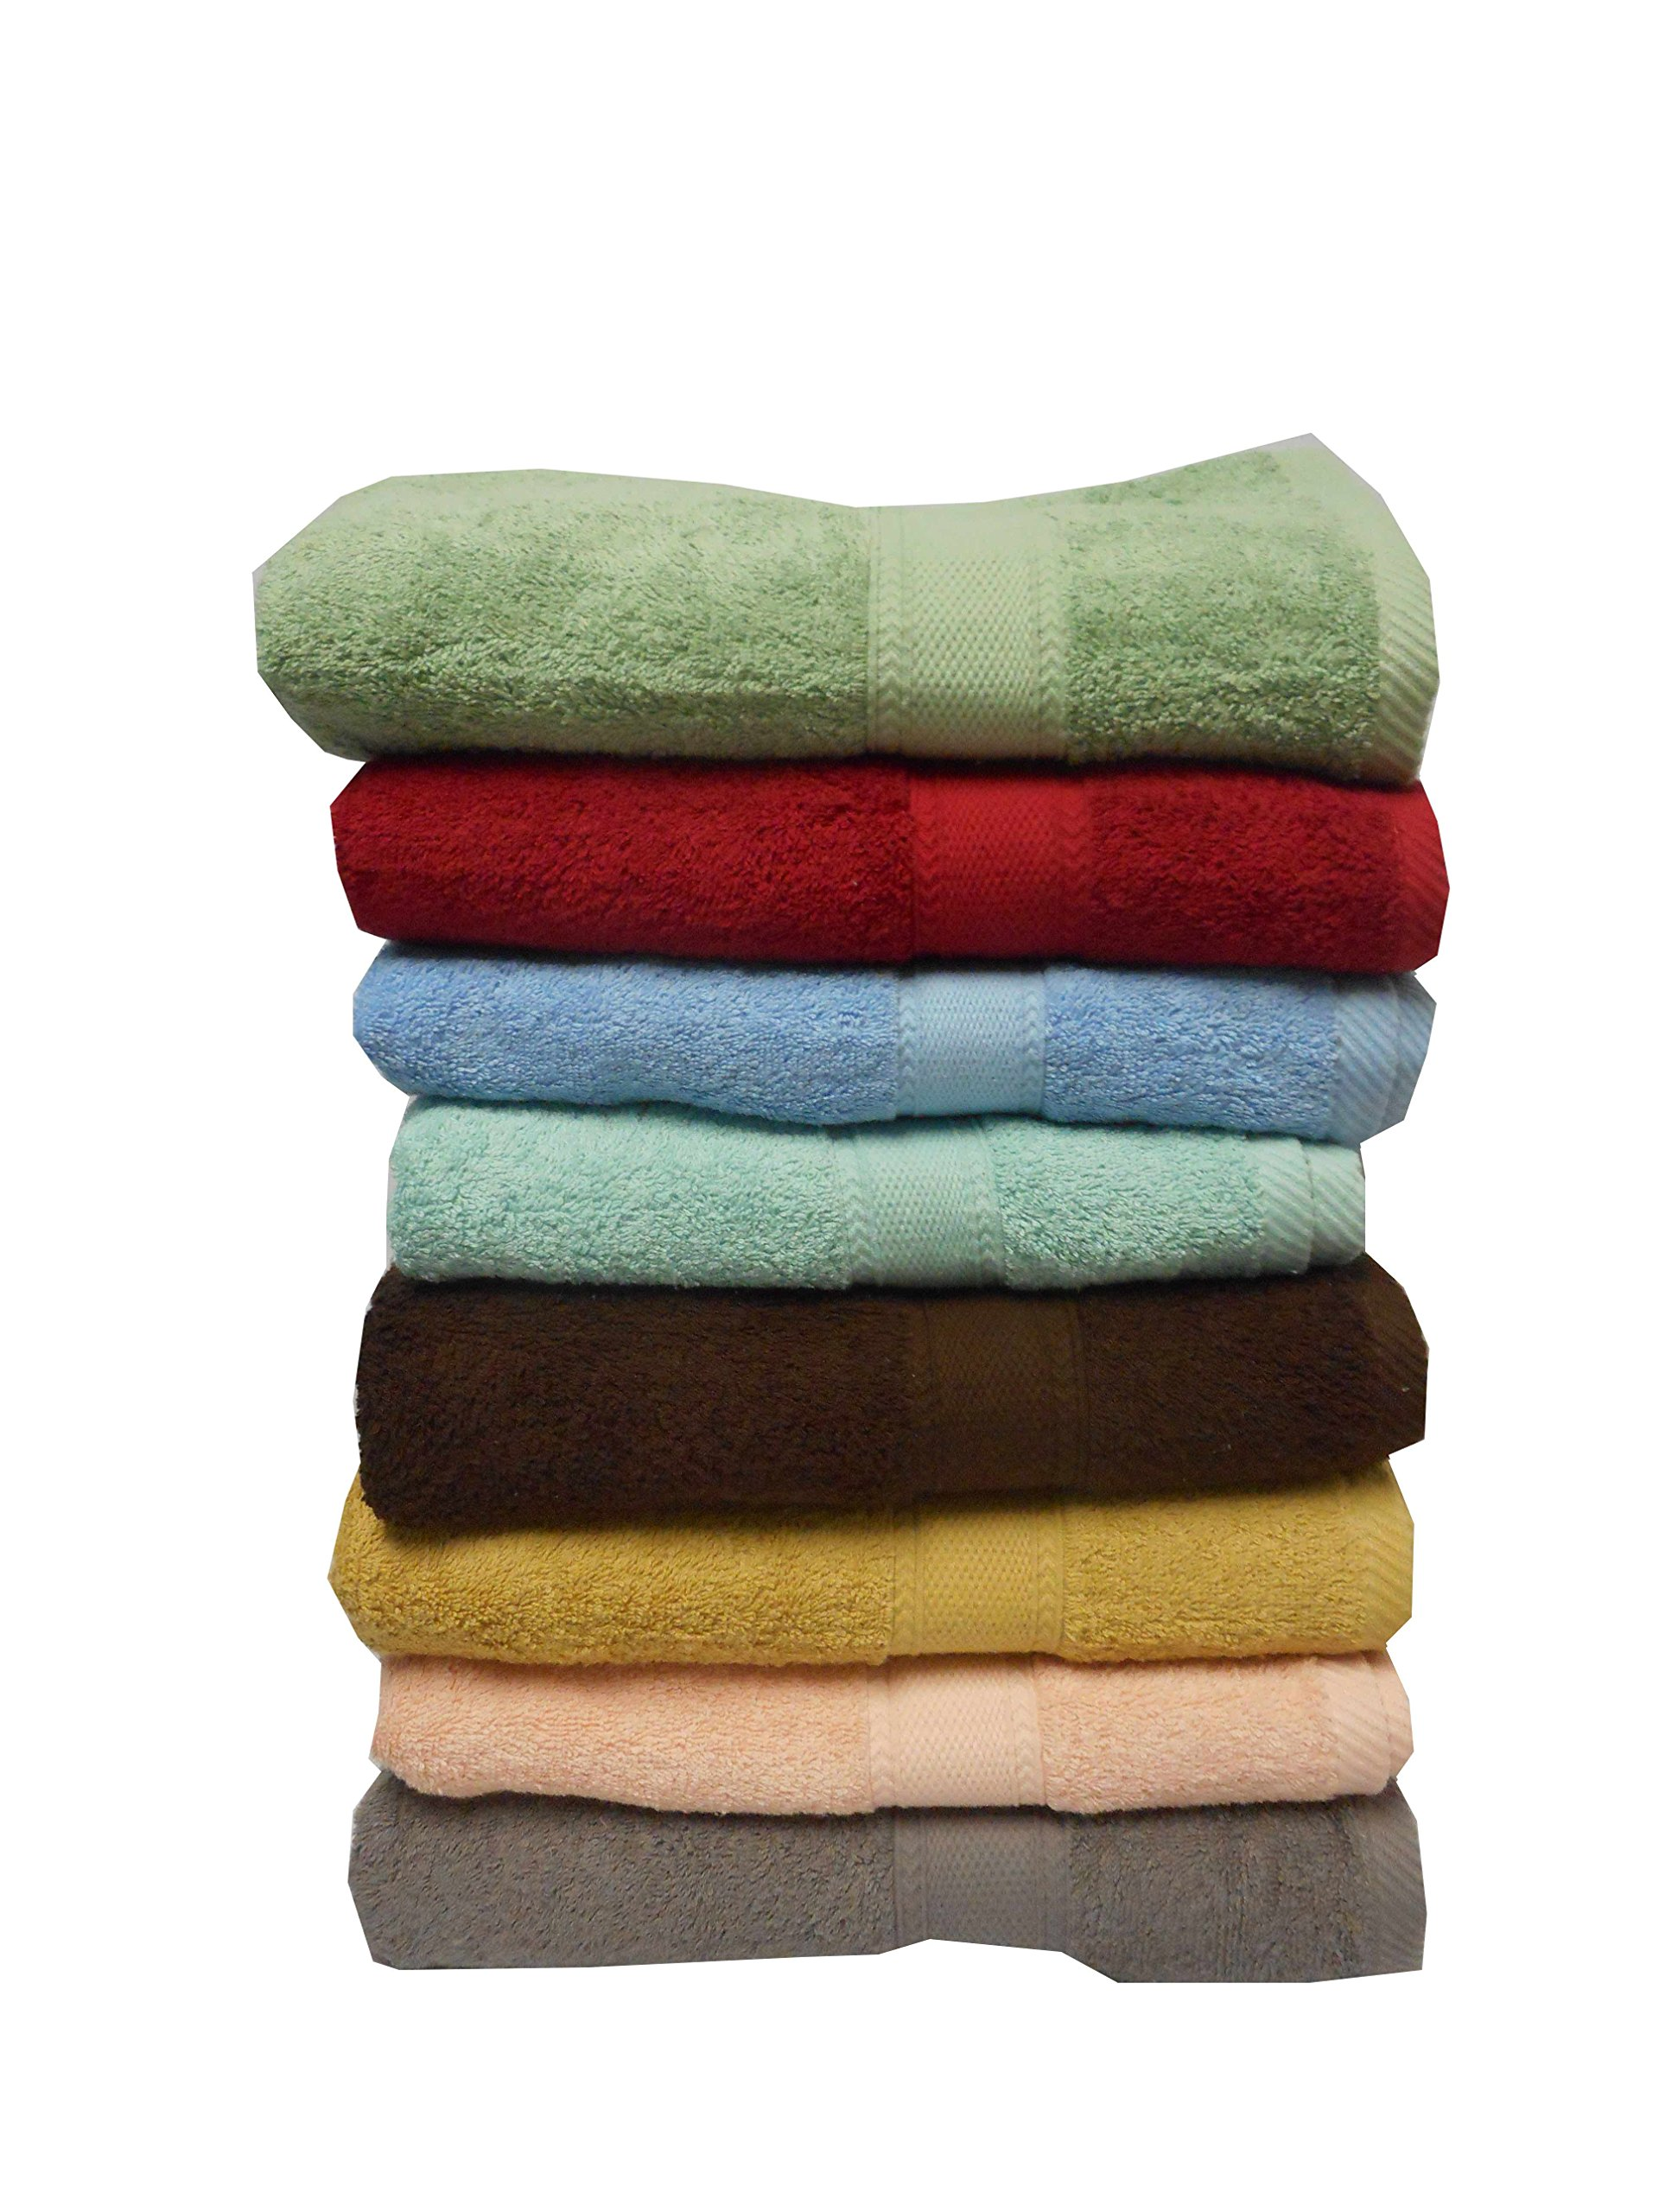 Livingston Home Standard Quality 4 Pcs Pack Bath Towels Assorted Style & Color May Vary, 26 X 52 Inch , Multicolor